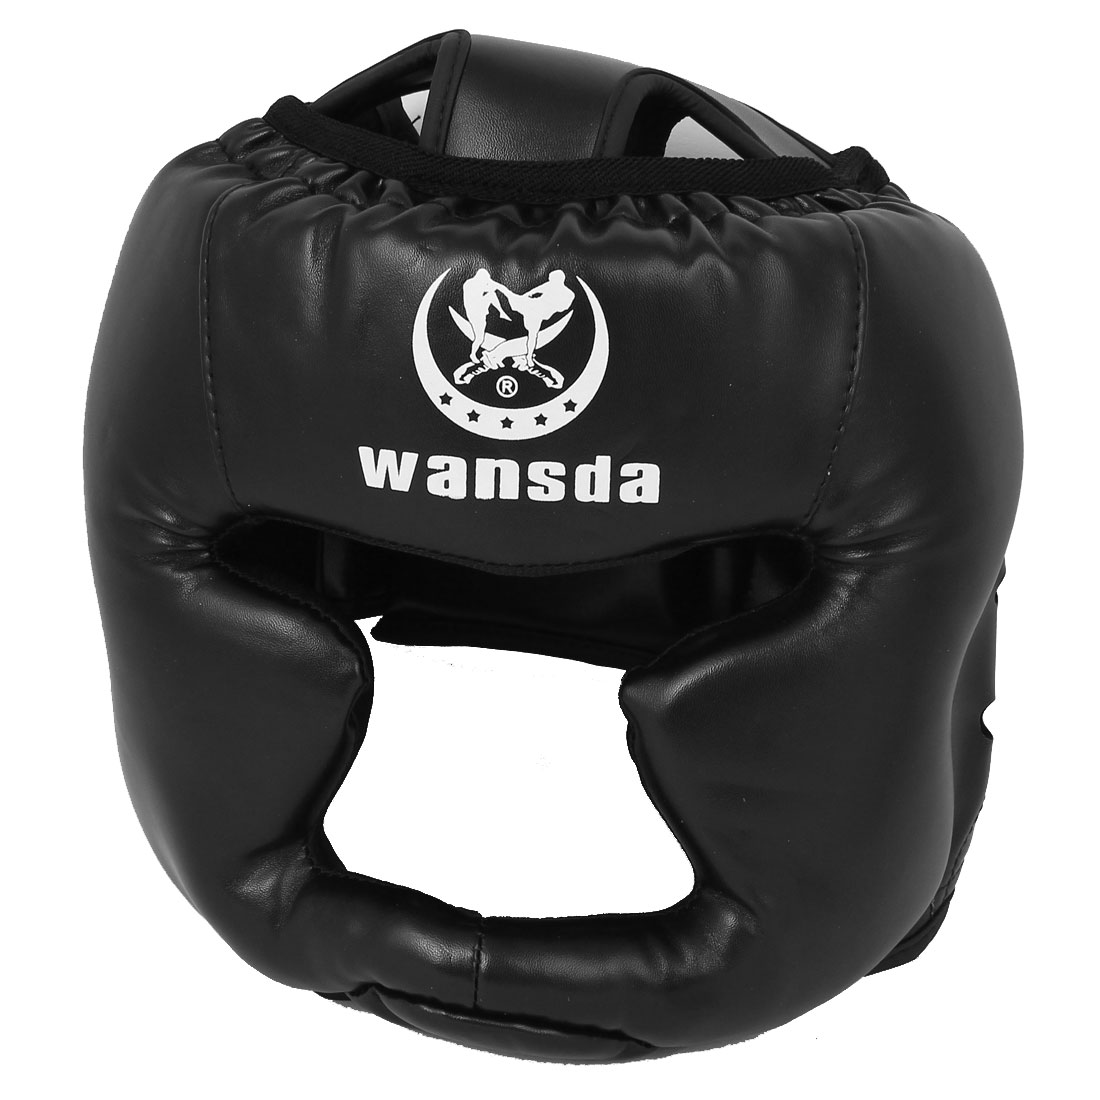 Unique Bargains Synthetic Leather Coated Boxing Head Guard Protector Helmet Headguard Black